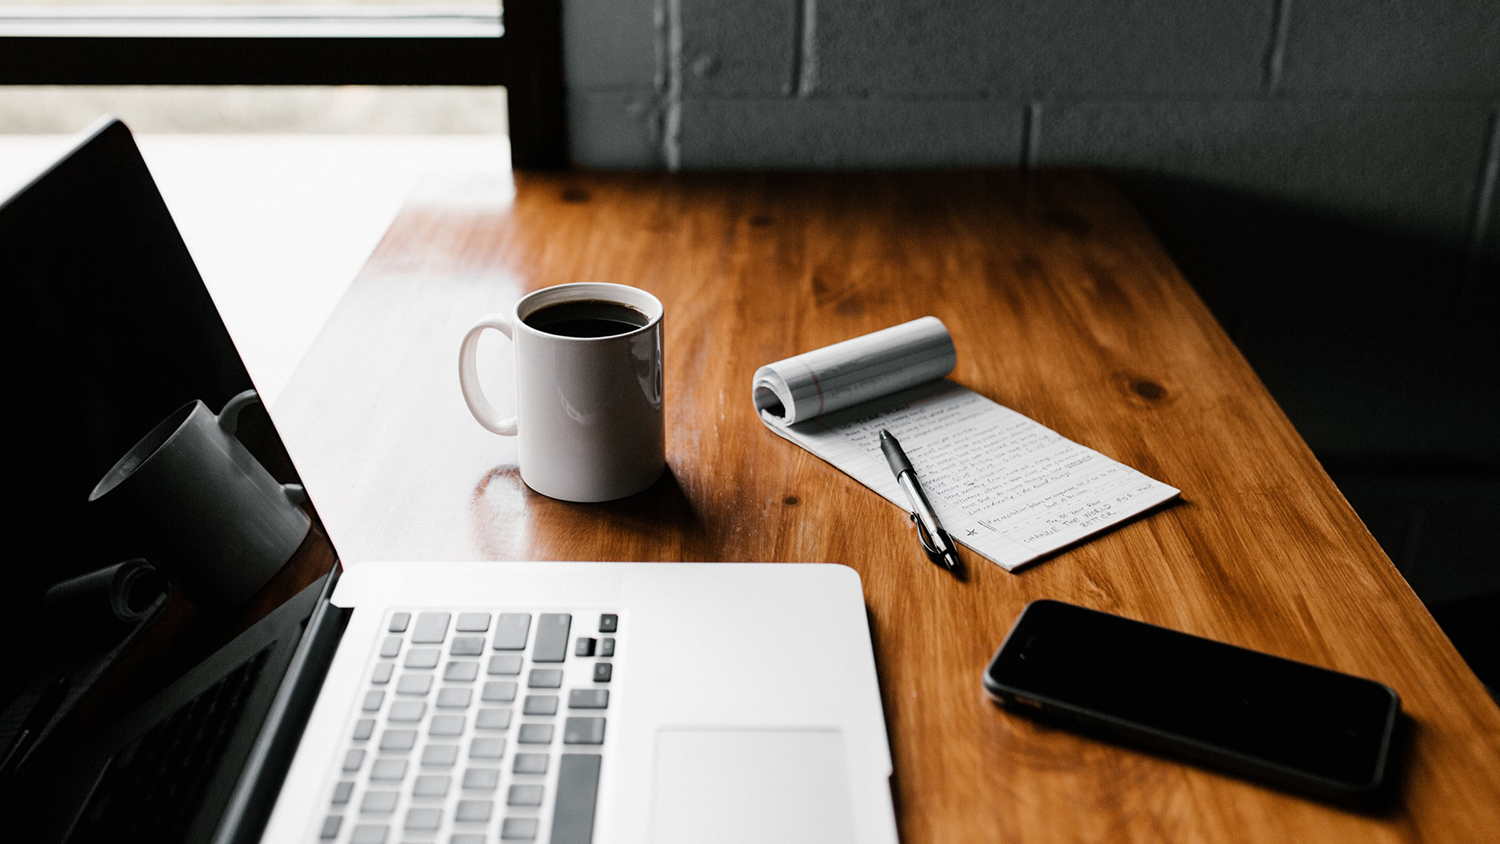 Table with laptop, smartphone and coffee cup.